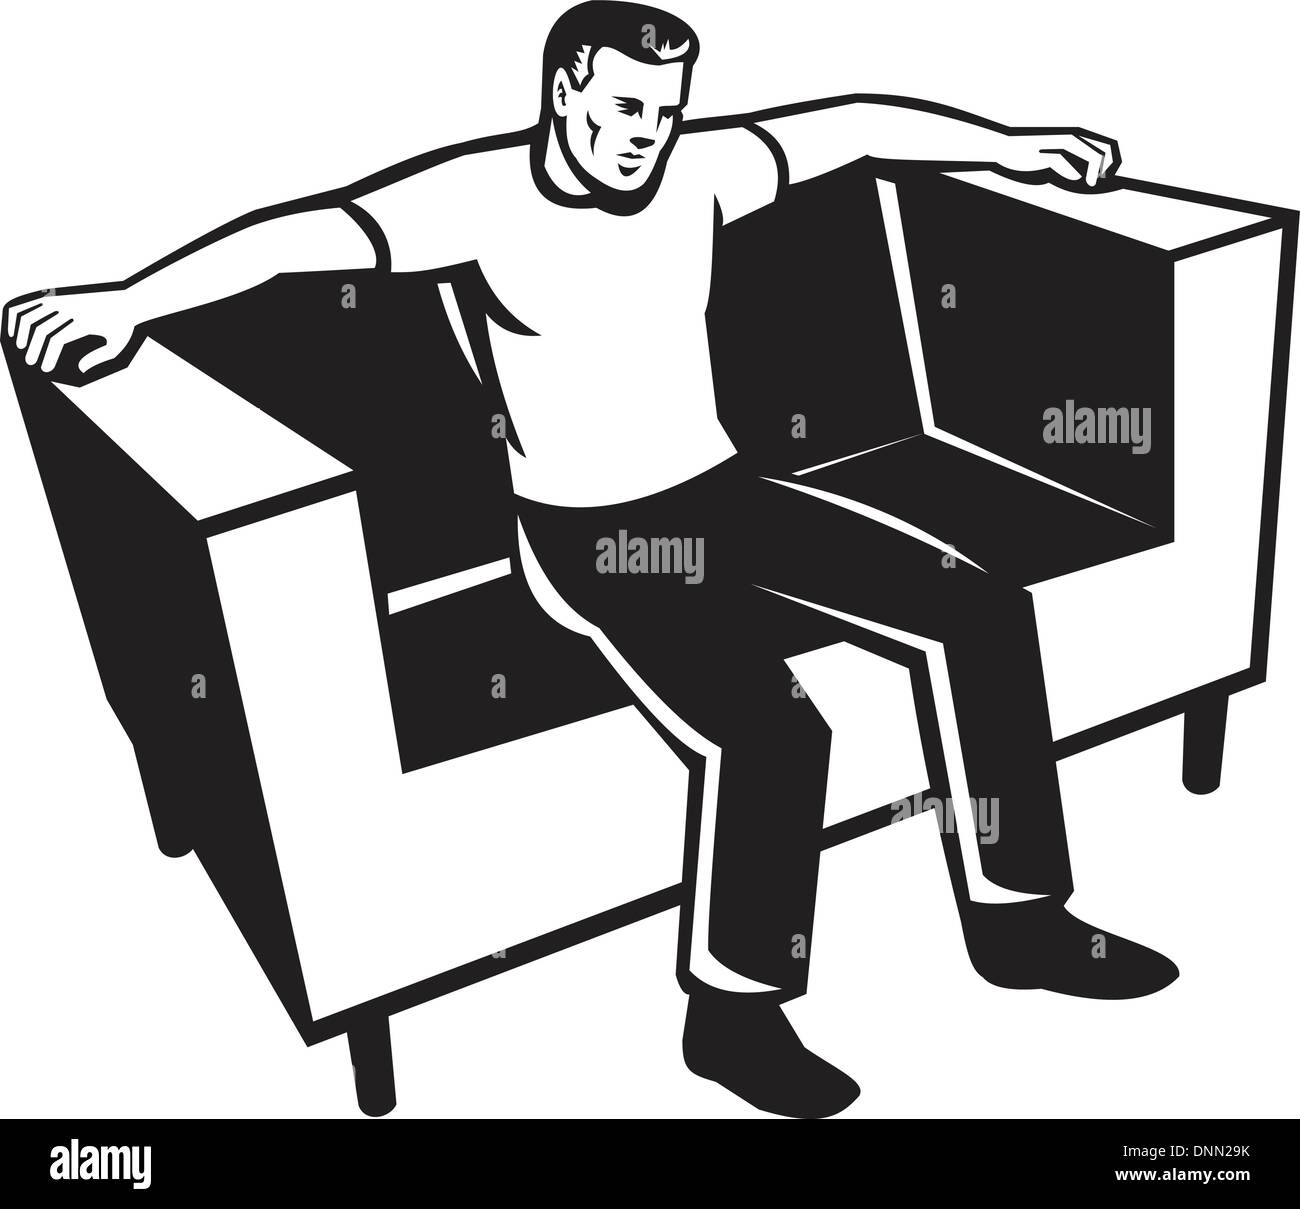 Man sitting in chair drawing - Illustration Of A Man Sitting On Sofa Couch Chair Front View Done In Retro Style On Isolated Background